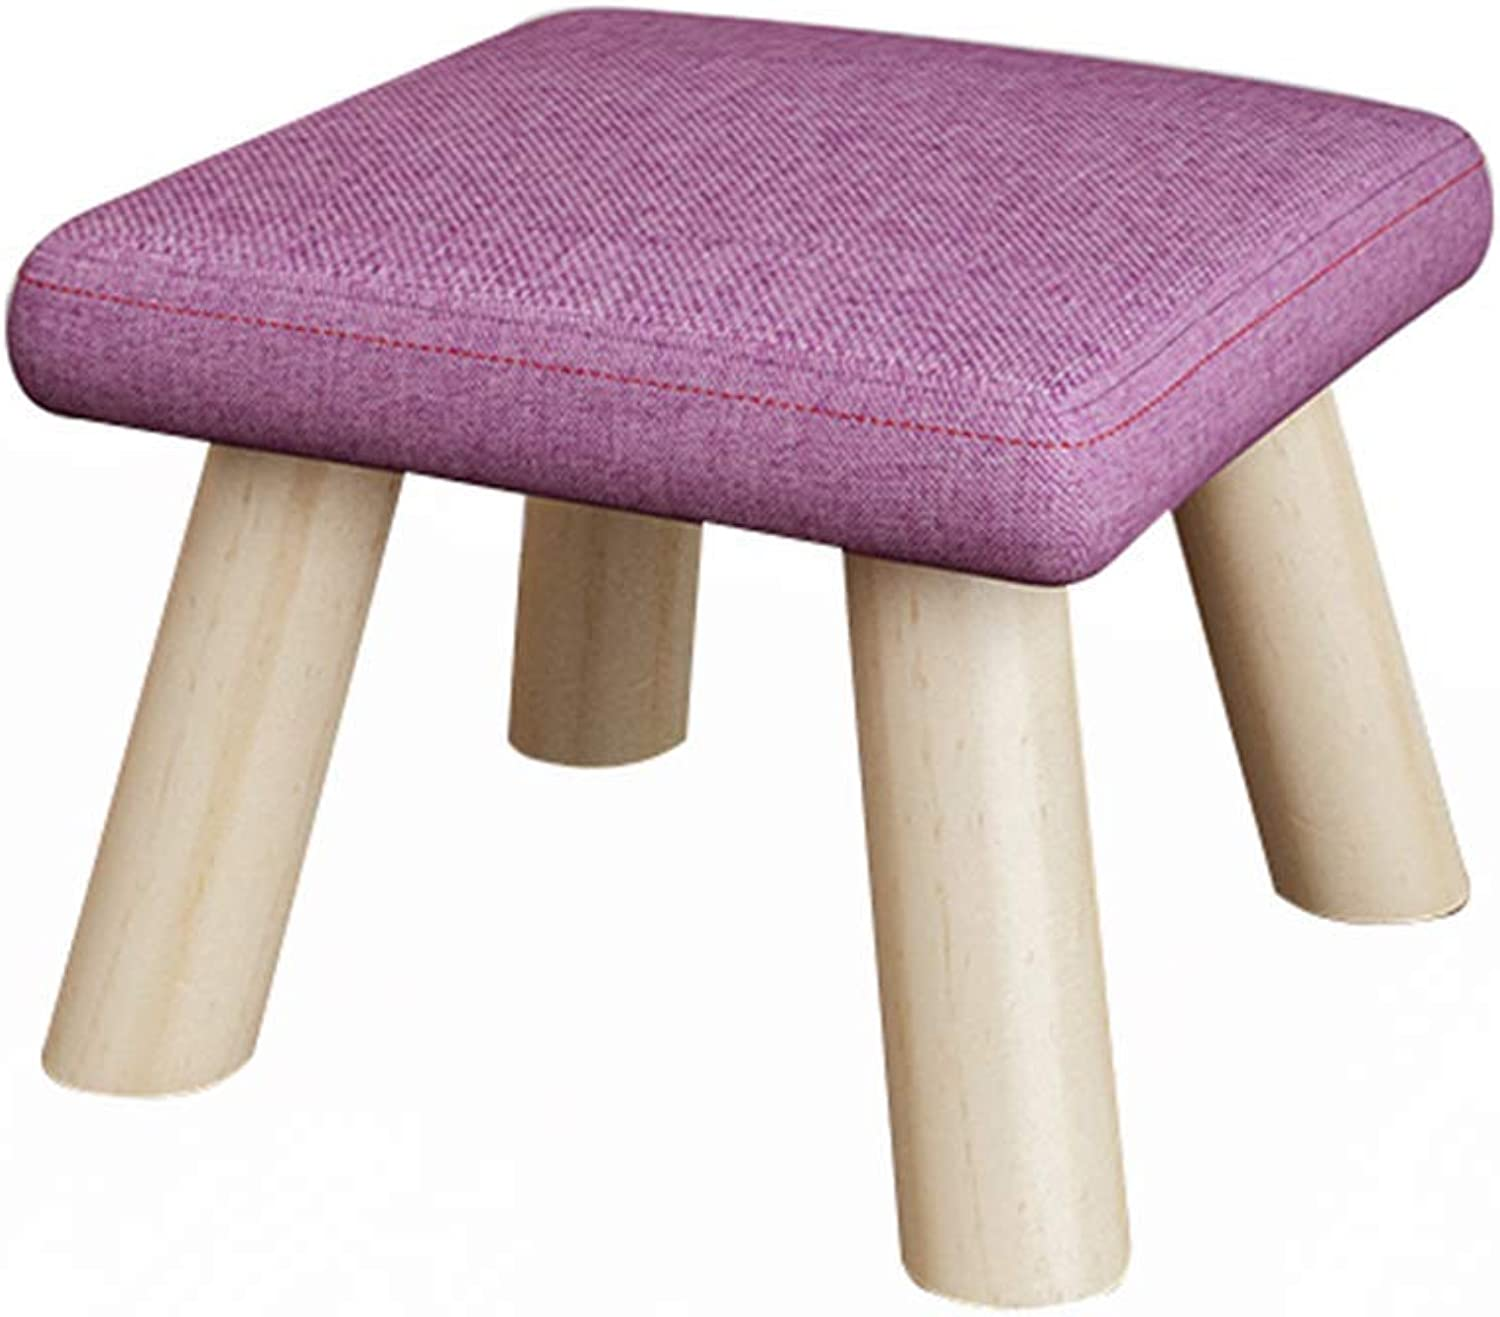 GJD Stool - Sofa Stool, Home shoes Bench, Solid Wood Living Room Small Stool Fabric Bench (color   D, Size   26  26  19cm)